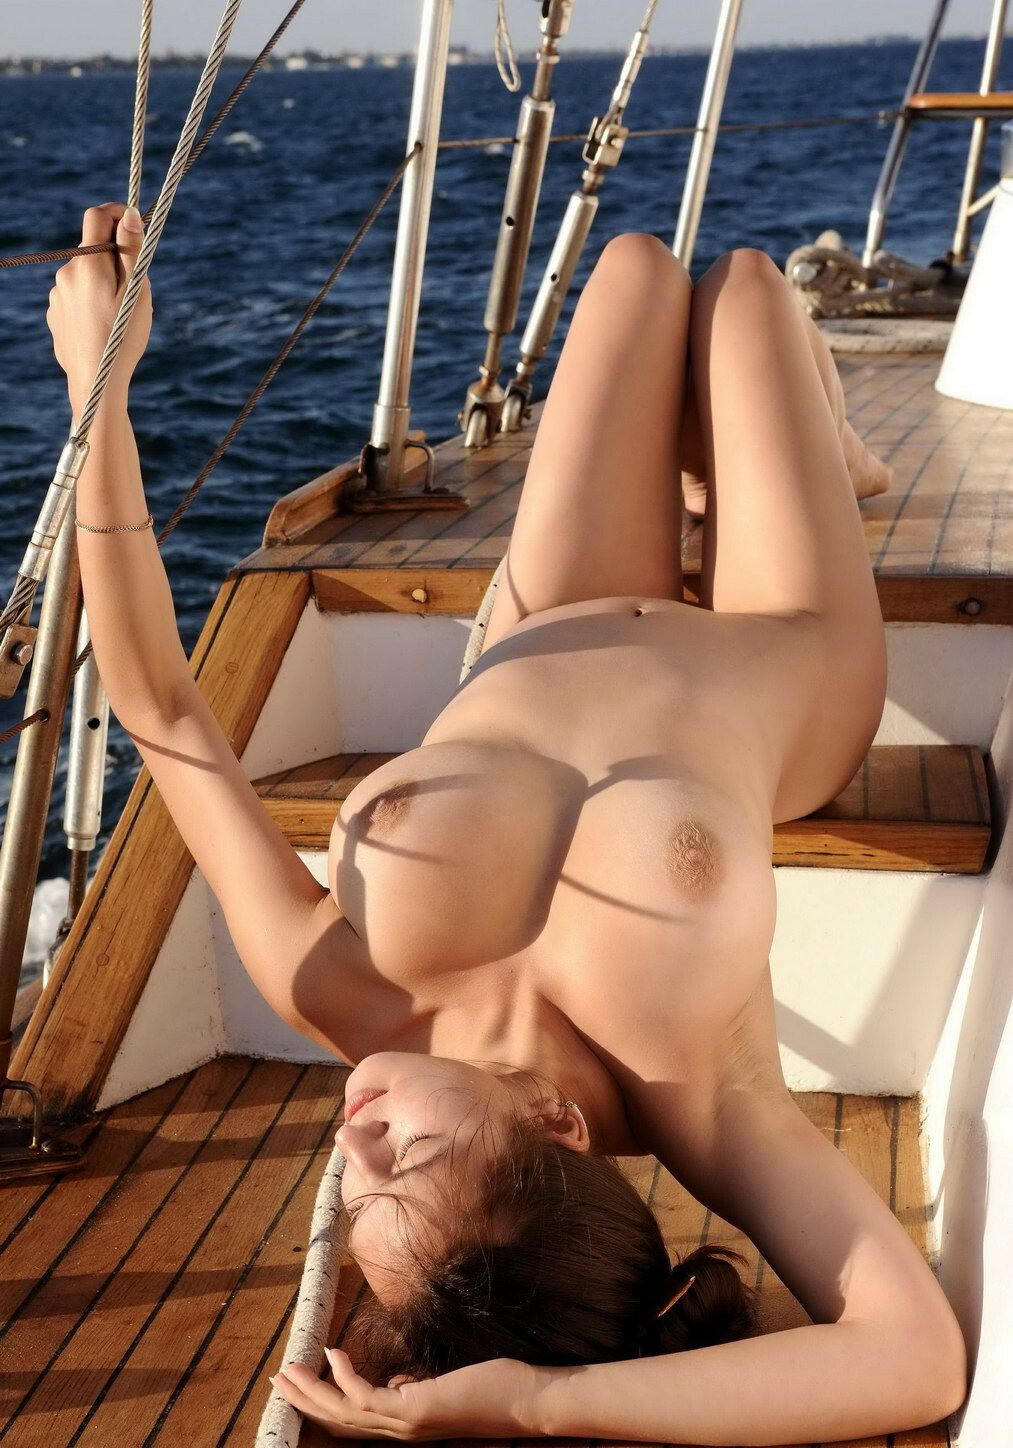 Pics of topless girls on boats, married couple fuck shemale movie